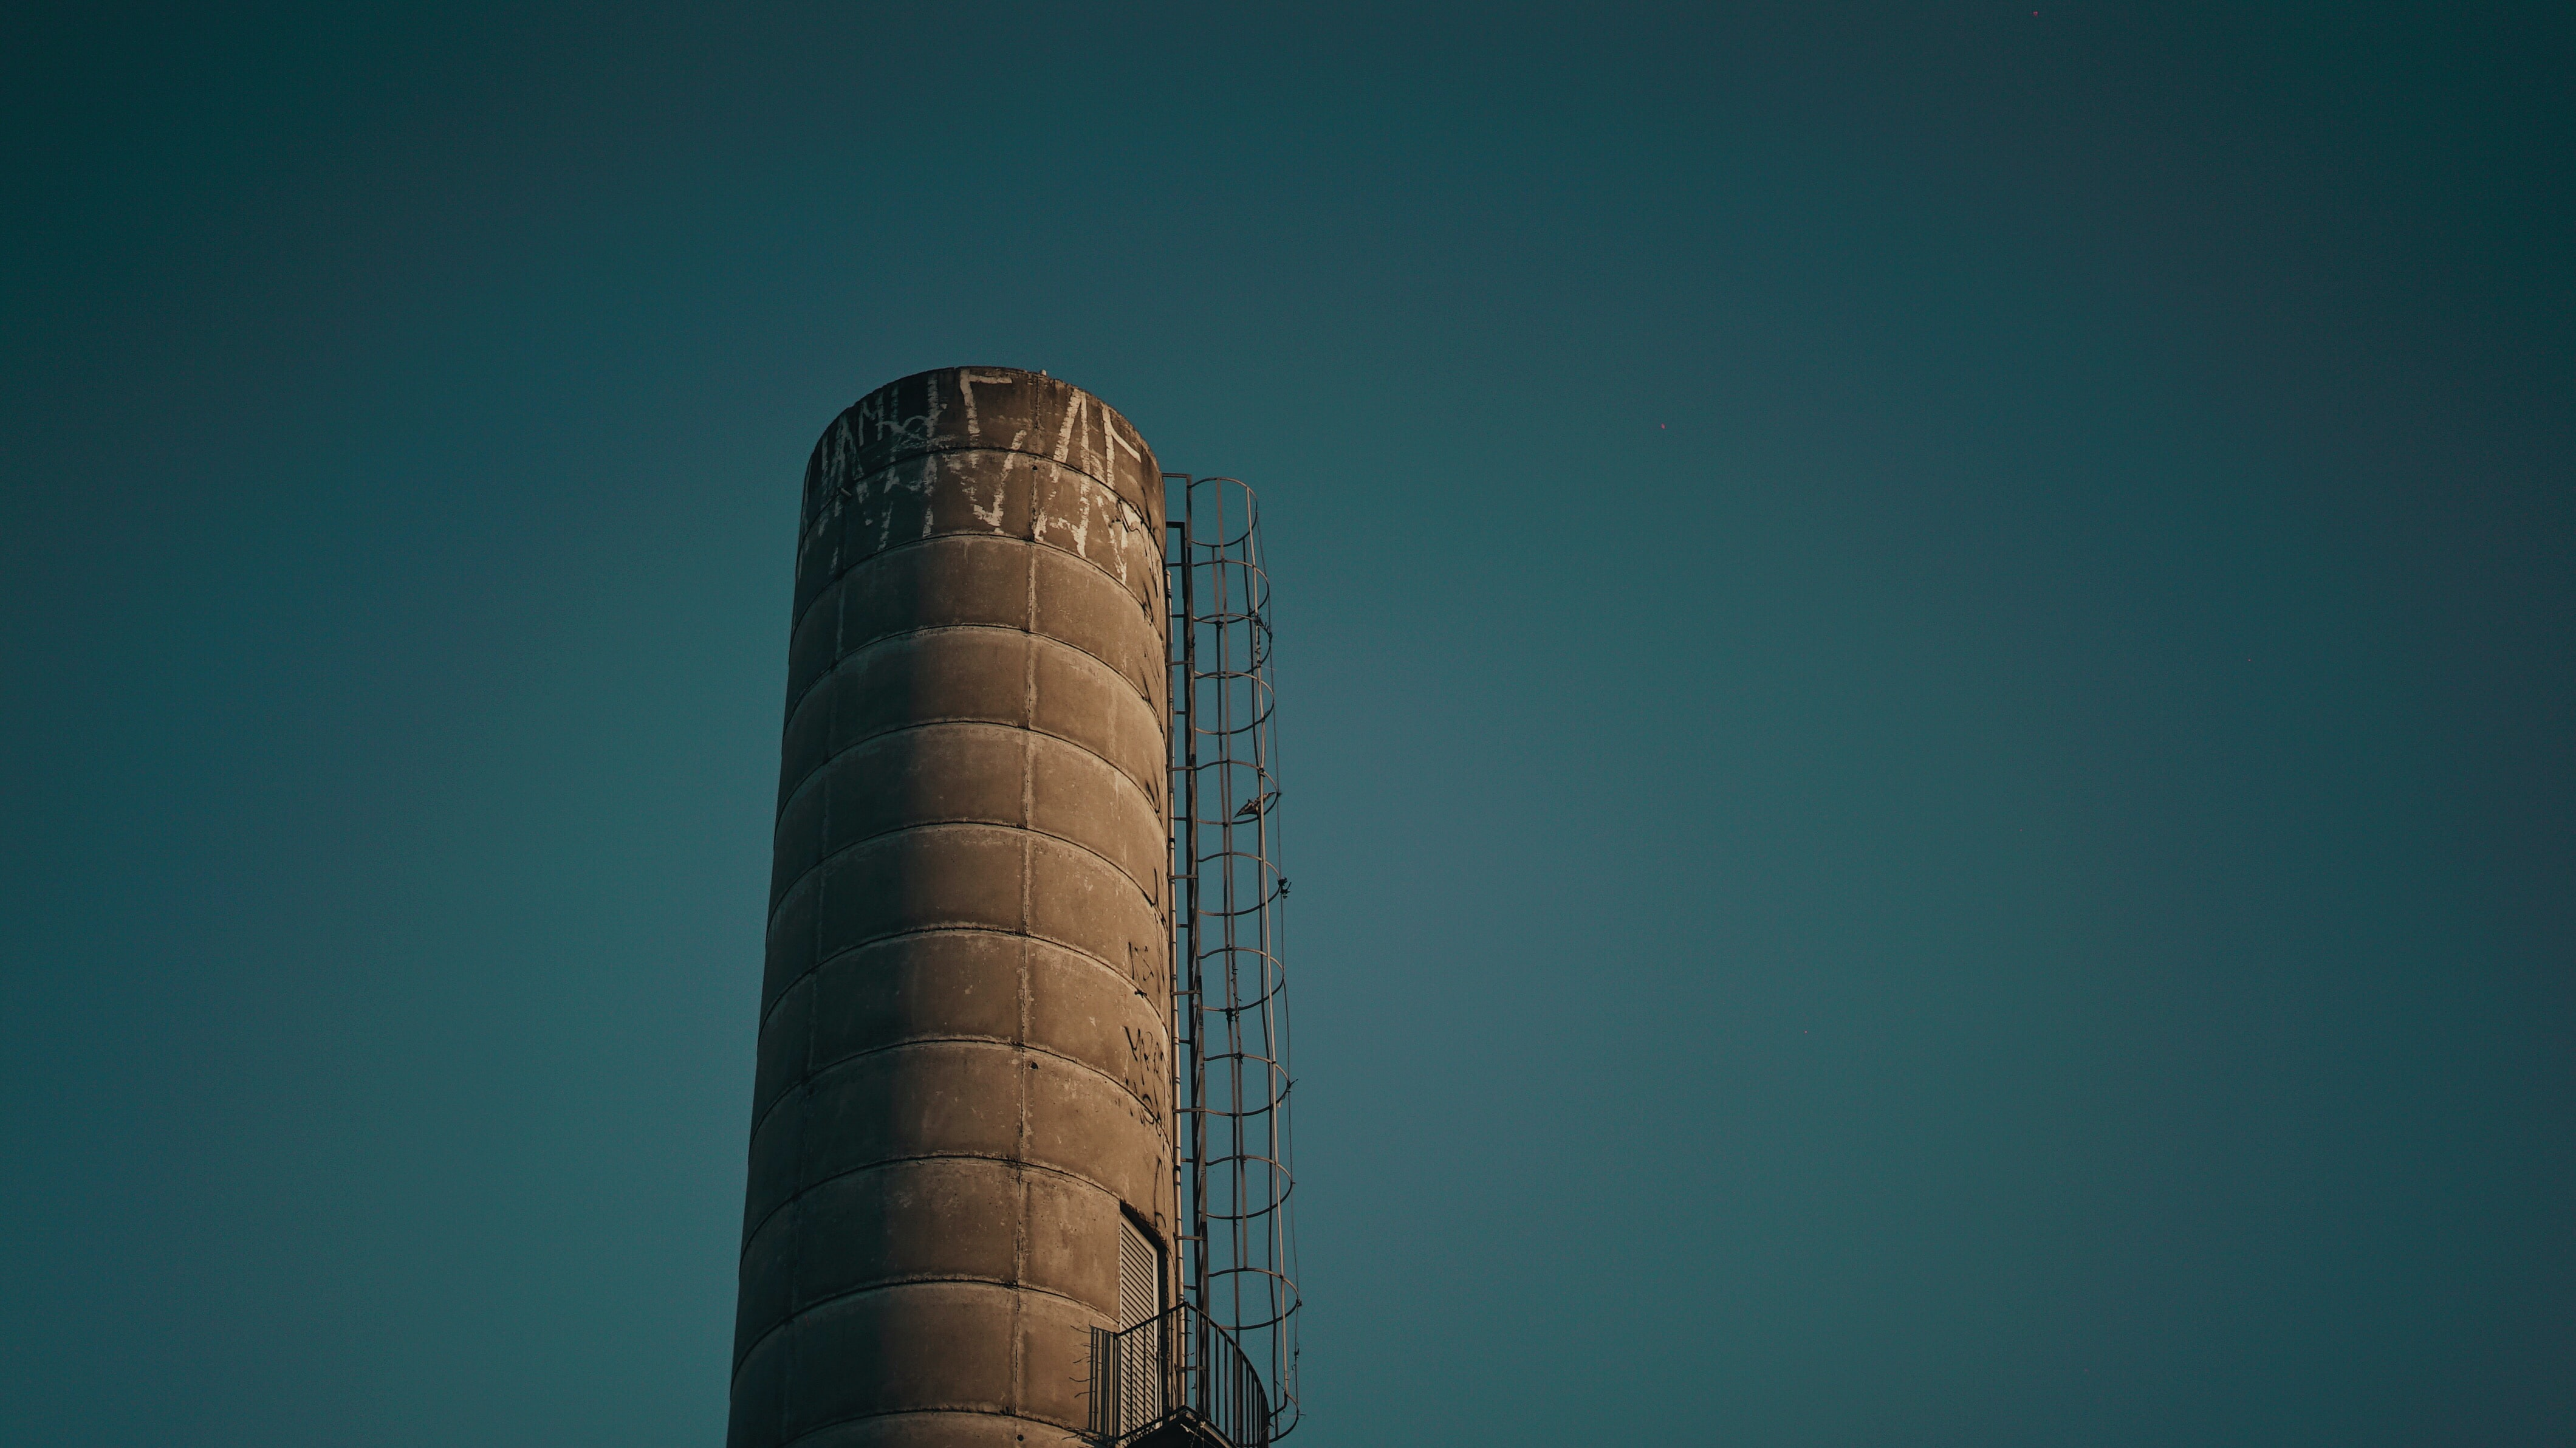 gray power plant with ladder close-up photo